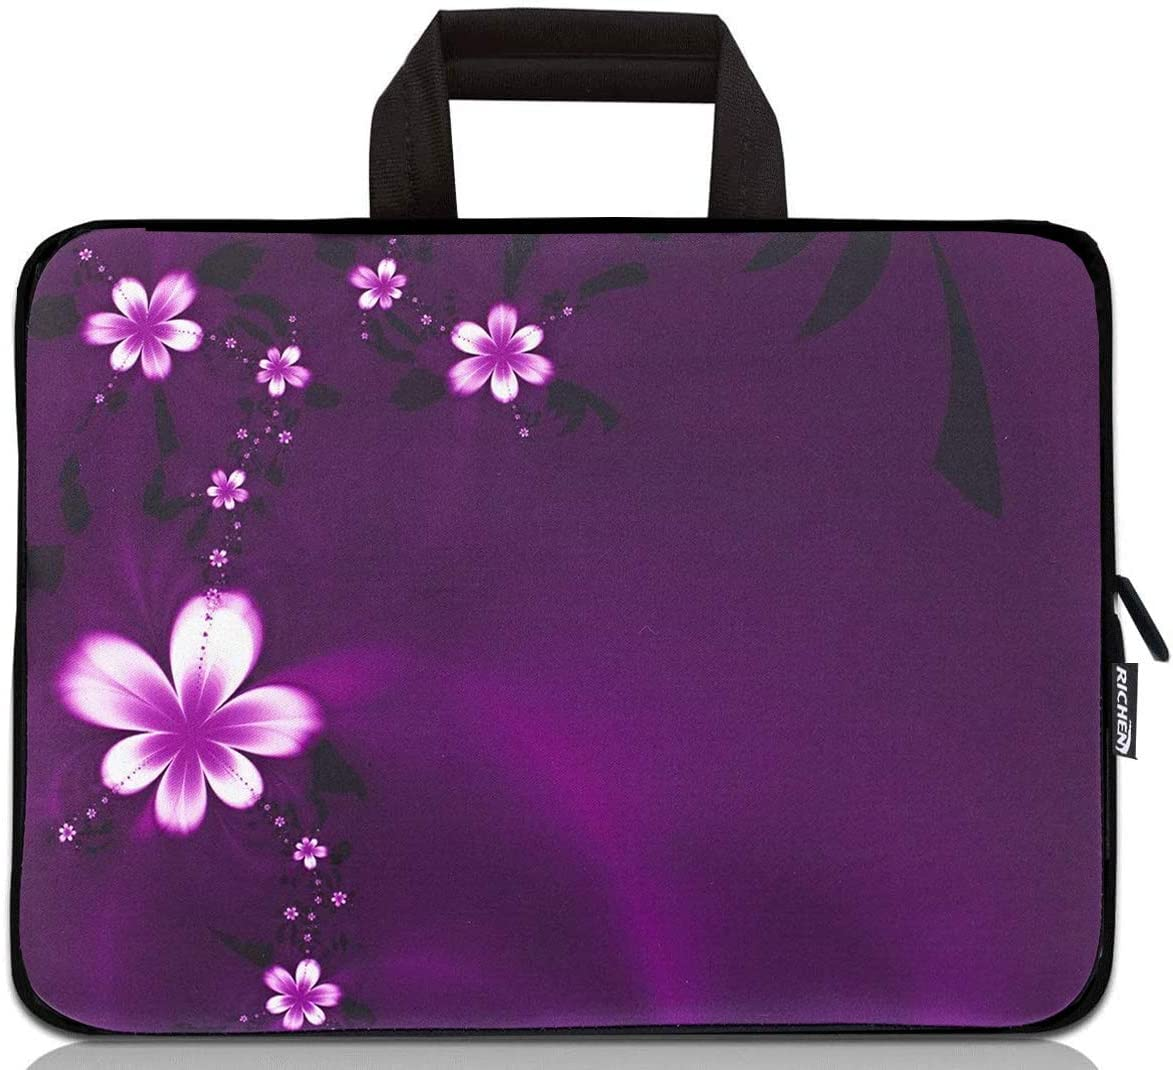 15 inch Neoprene Laptop Carrying Bag Chromebook Case Tablet Travel Cover with Handle Zipper Carrying Sleeve Case Bag Fits 14 15 15.4 inch Netbook/Laptop (14-15.4 inch, Purple Flowers)